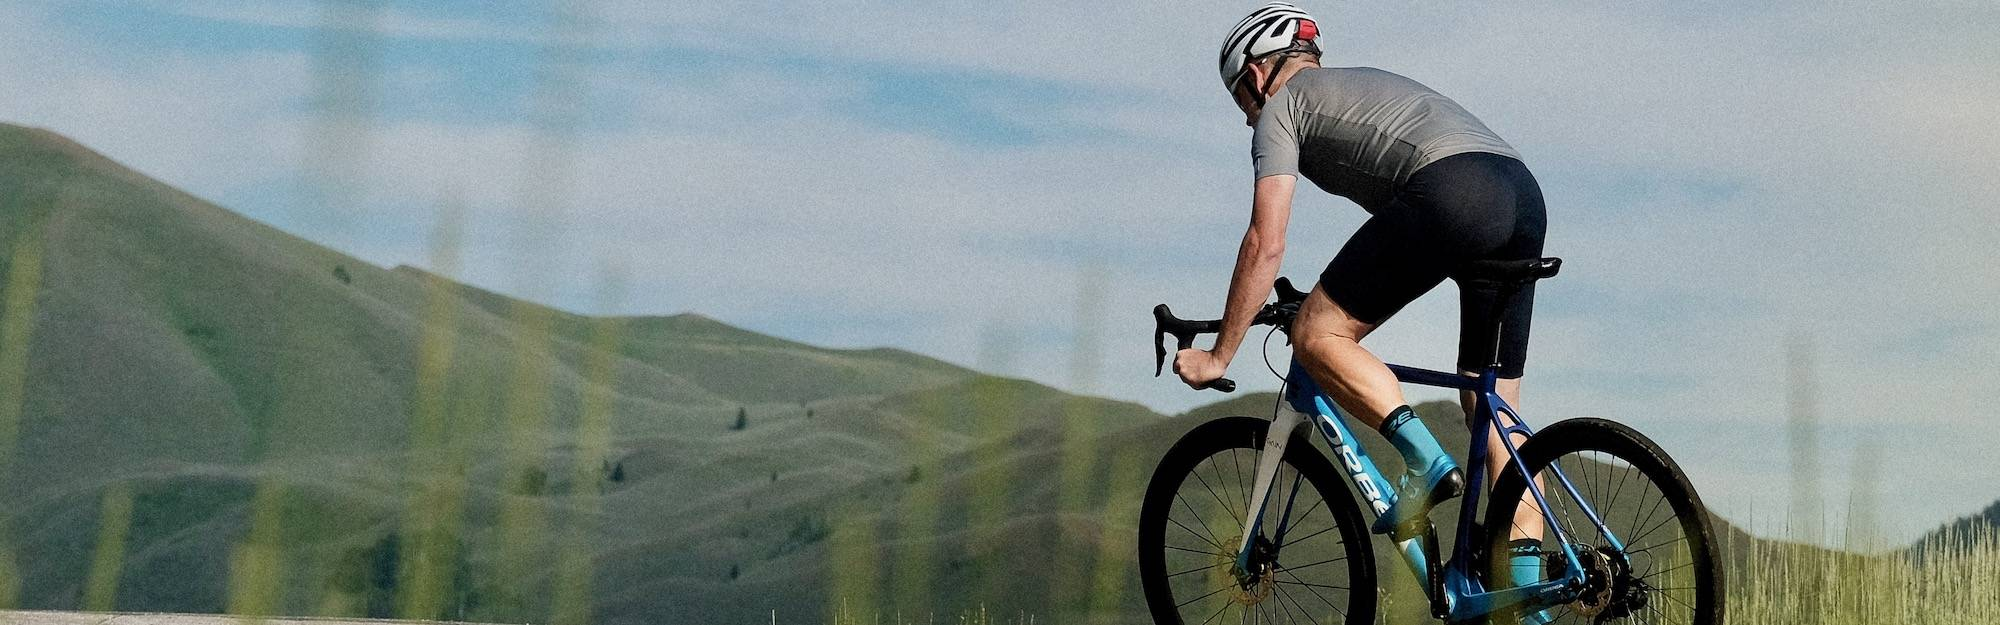 Best road bikes available at Mike's Bikes!